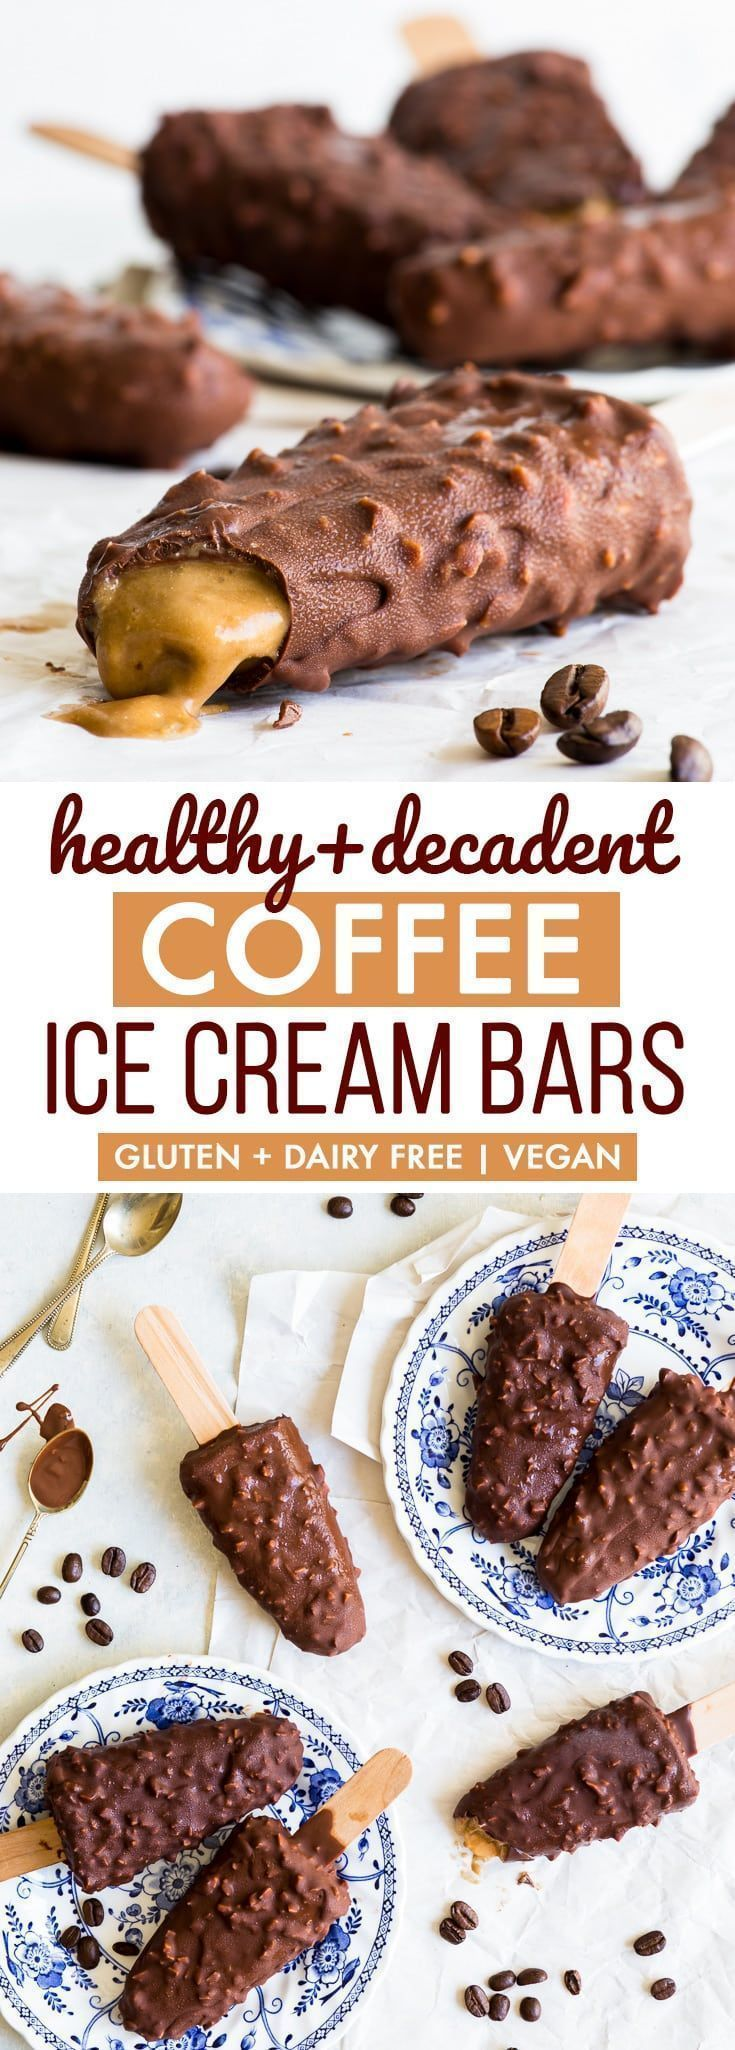 Healthy + Decadent Coffee Ice Cream Bars {gluten, dairy, egg & soy free, vegan}   - sweet, vegan and delicious -